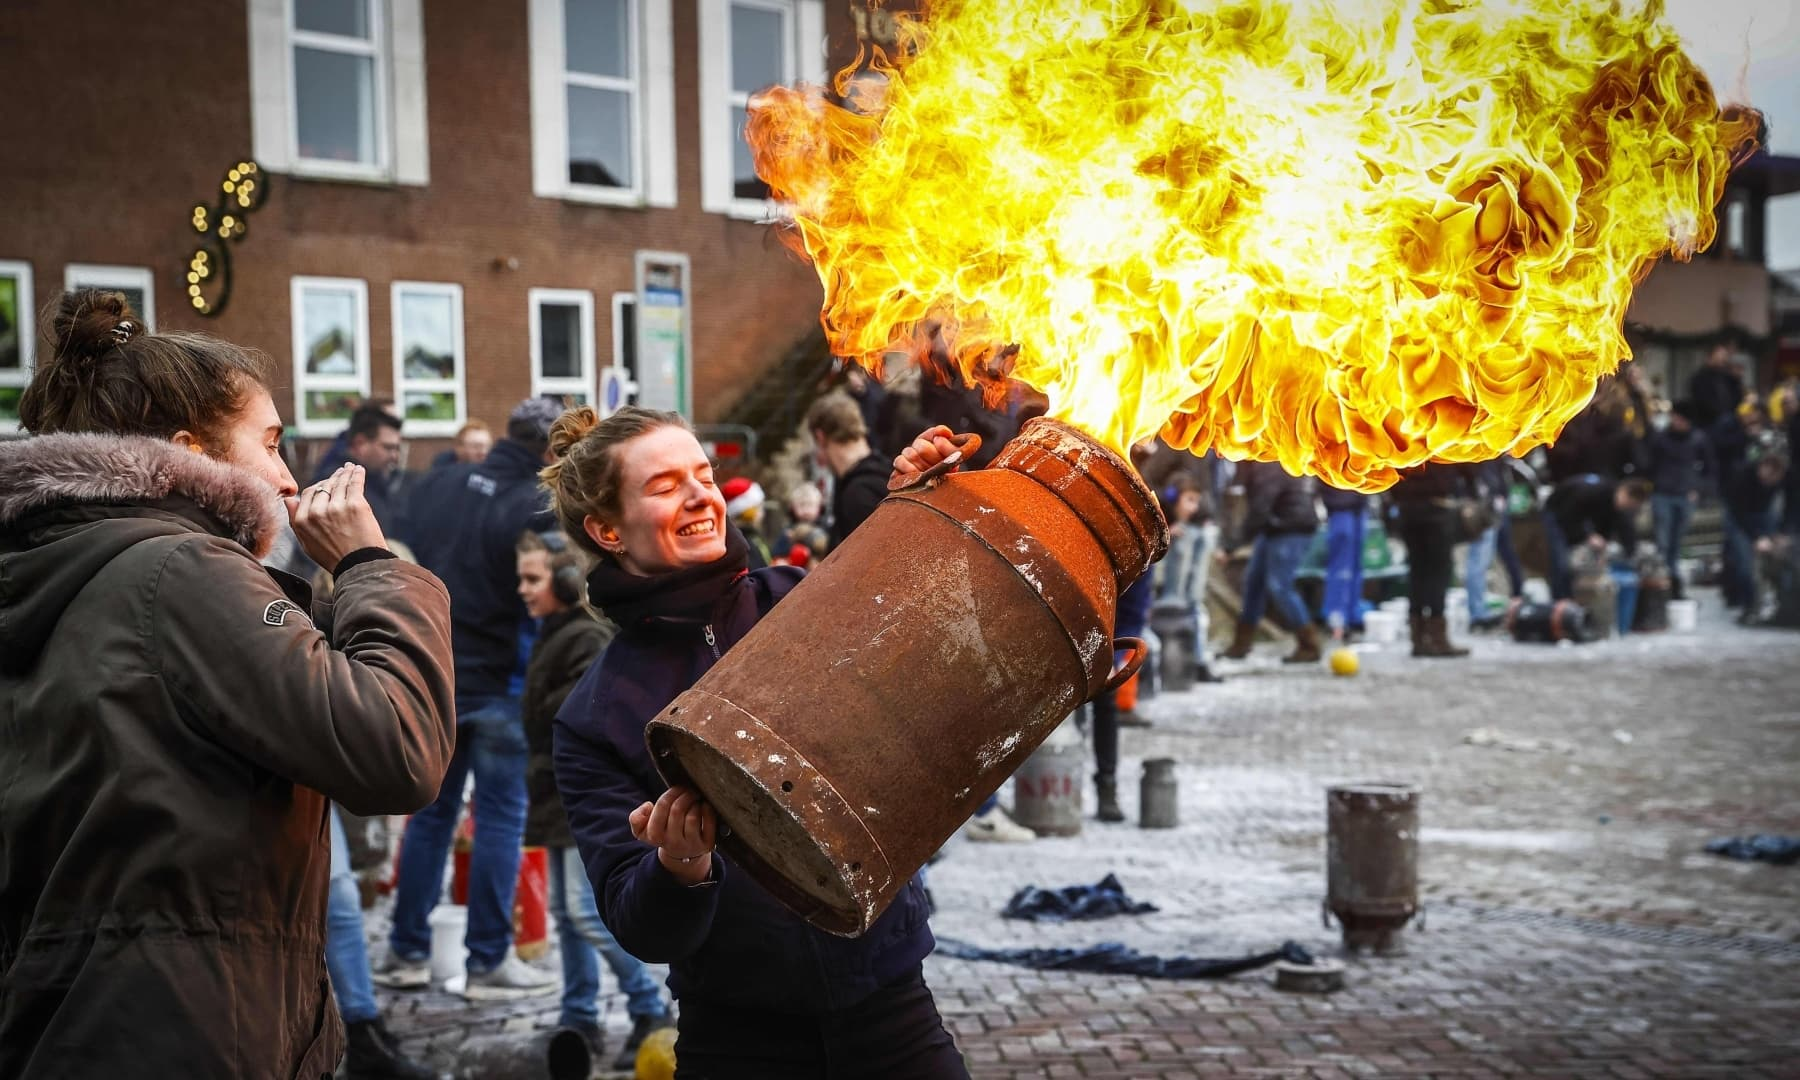 Residents of the municipality of Genemuiden celebrate the end of 2020 with carbide shooting on December 31, in the Netherlands. — AFP